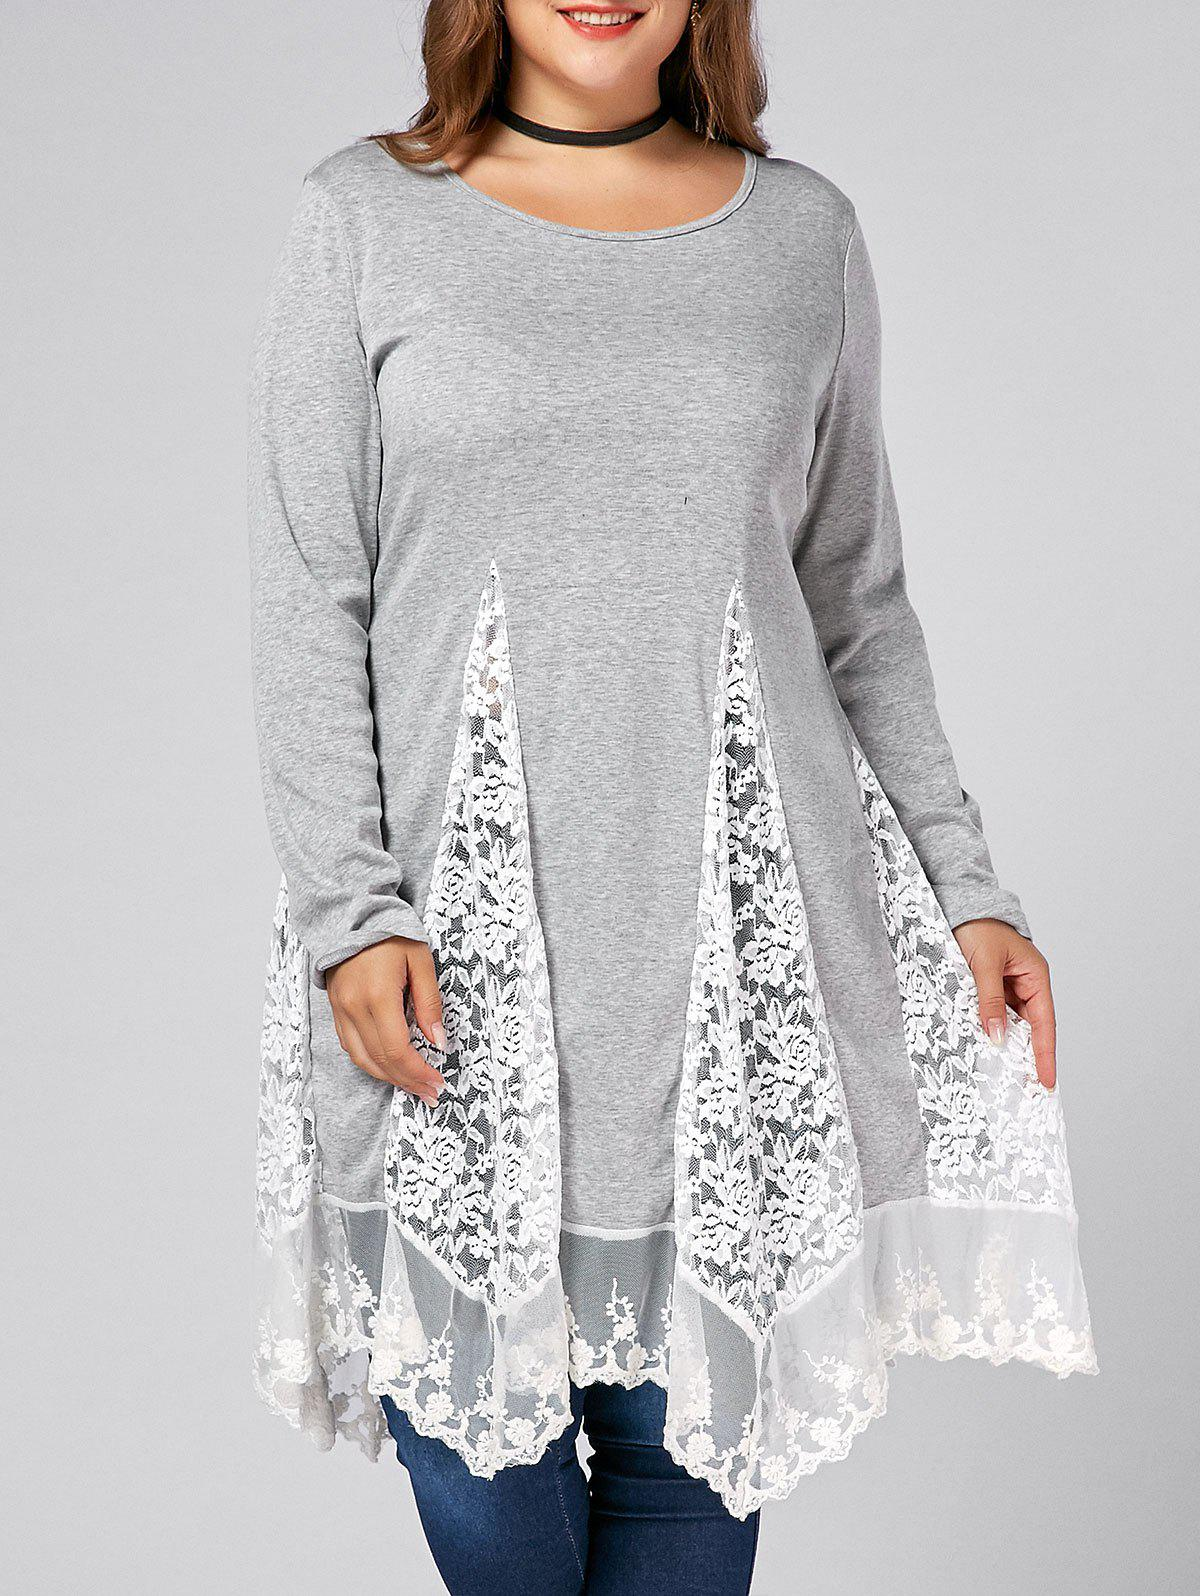 Plus Size Lace Trim  Swing Long Sleeve T-shirtsWOMEN<br><br>Size: 5XL; Color: GRAY; Material: Cotton,Cotton Blends,Polyester; Shirt Length: Long; Sleeve Length: Full; Collar: Scoop Neck; Style: Casual; Season: Fall,Spring; Embellishment: Lace; Pattern Type: Others; Weight: 0.4000kg; Package Contents: 1 x Tee;